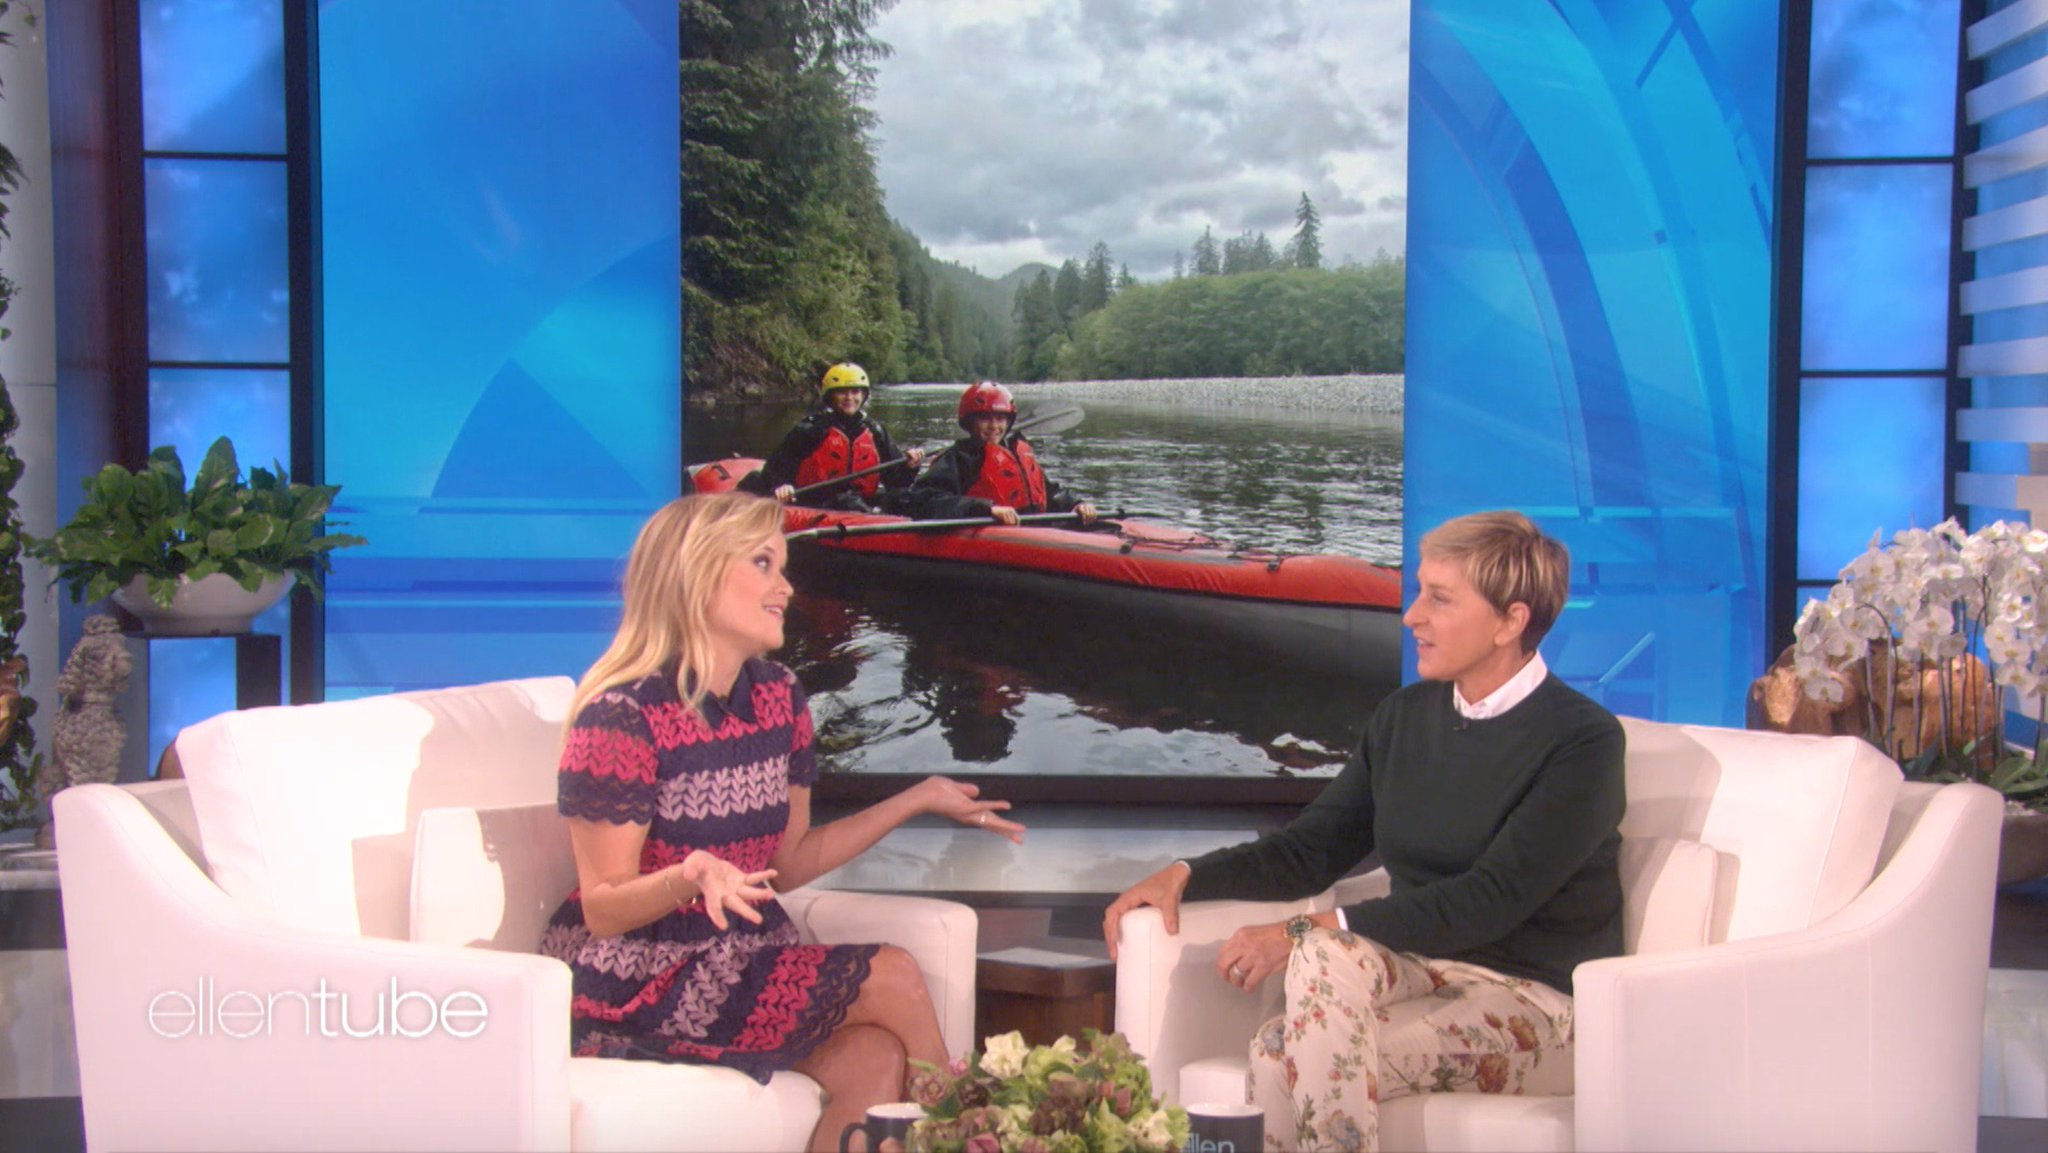 .@RWitherspoon is never getting me in a canoe. https://t.co/8GTDP7O1Fg